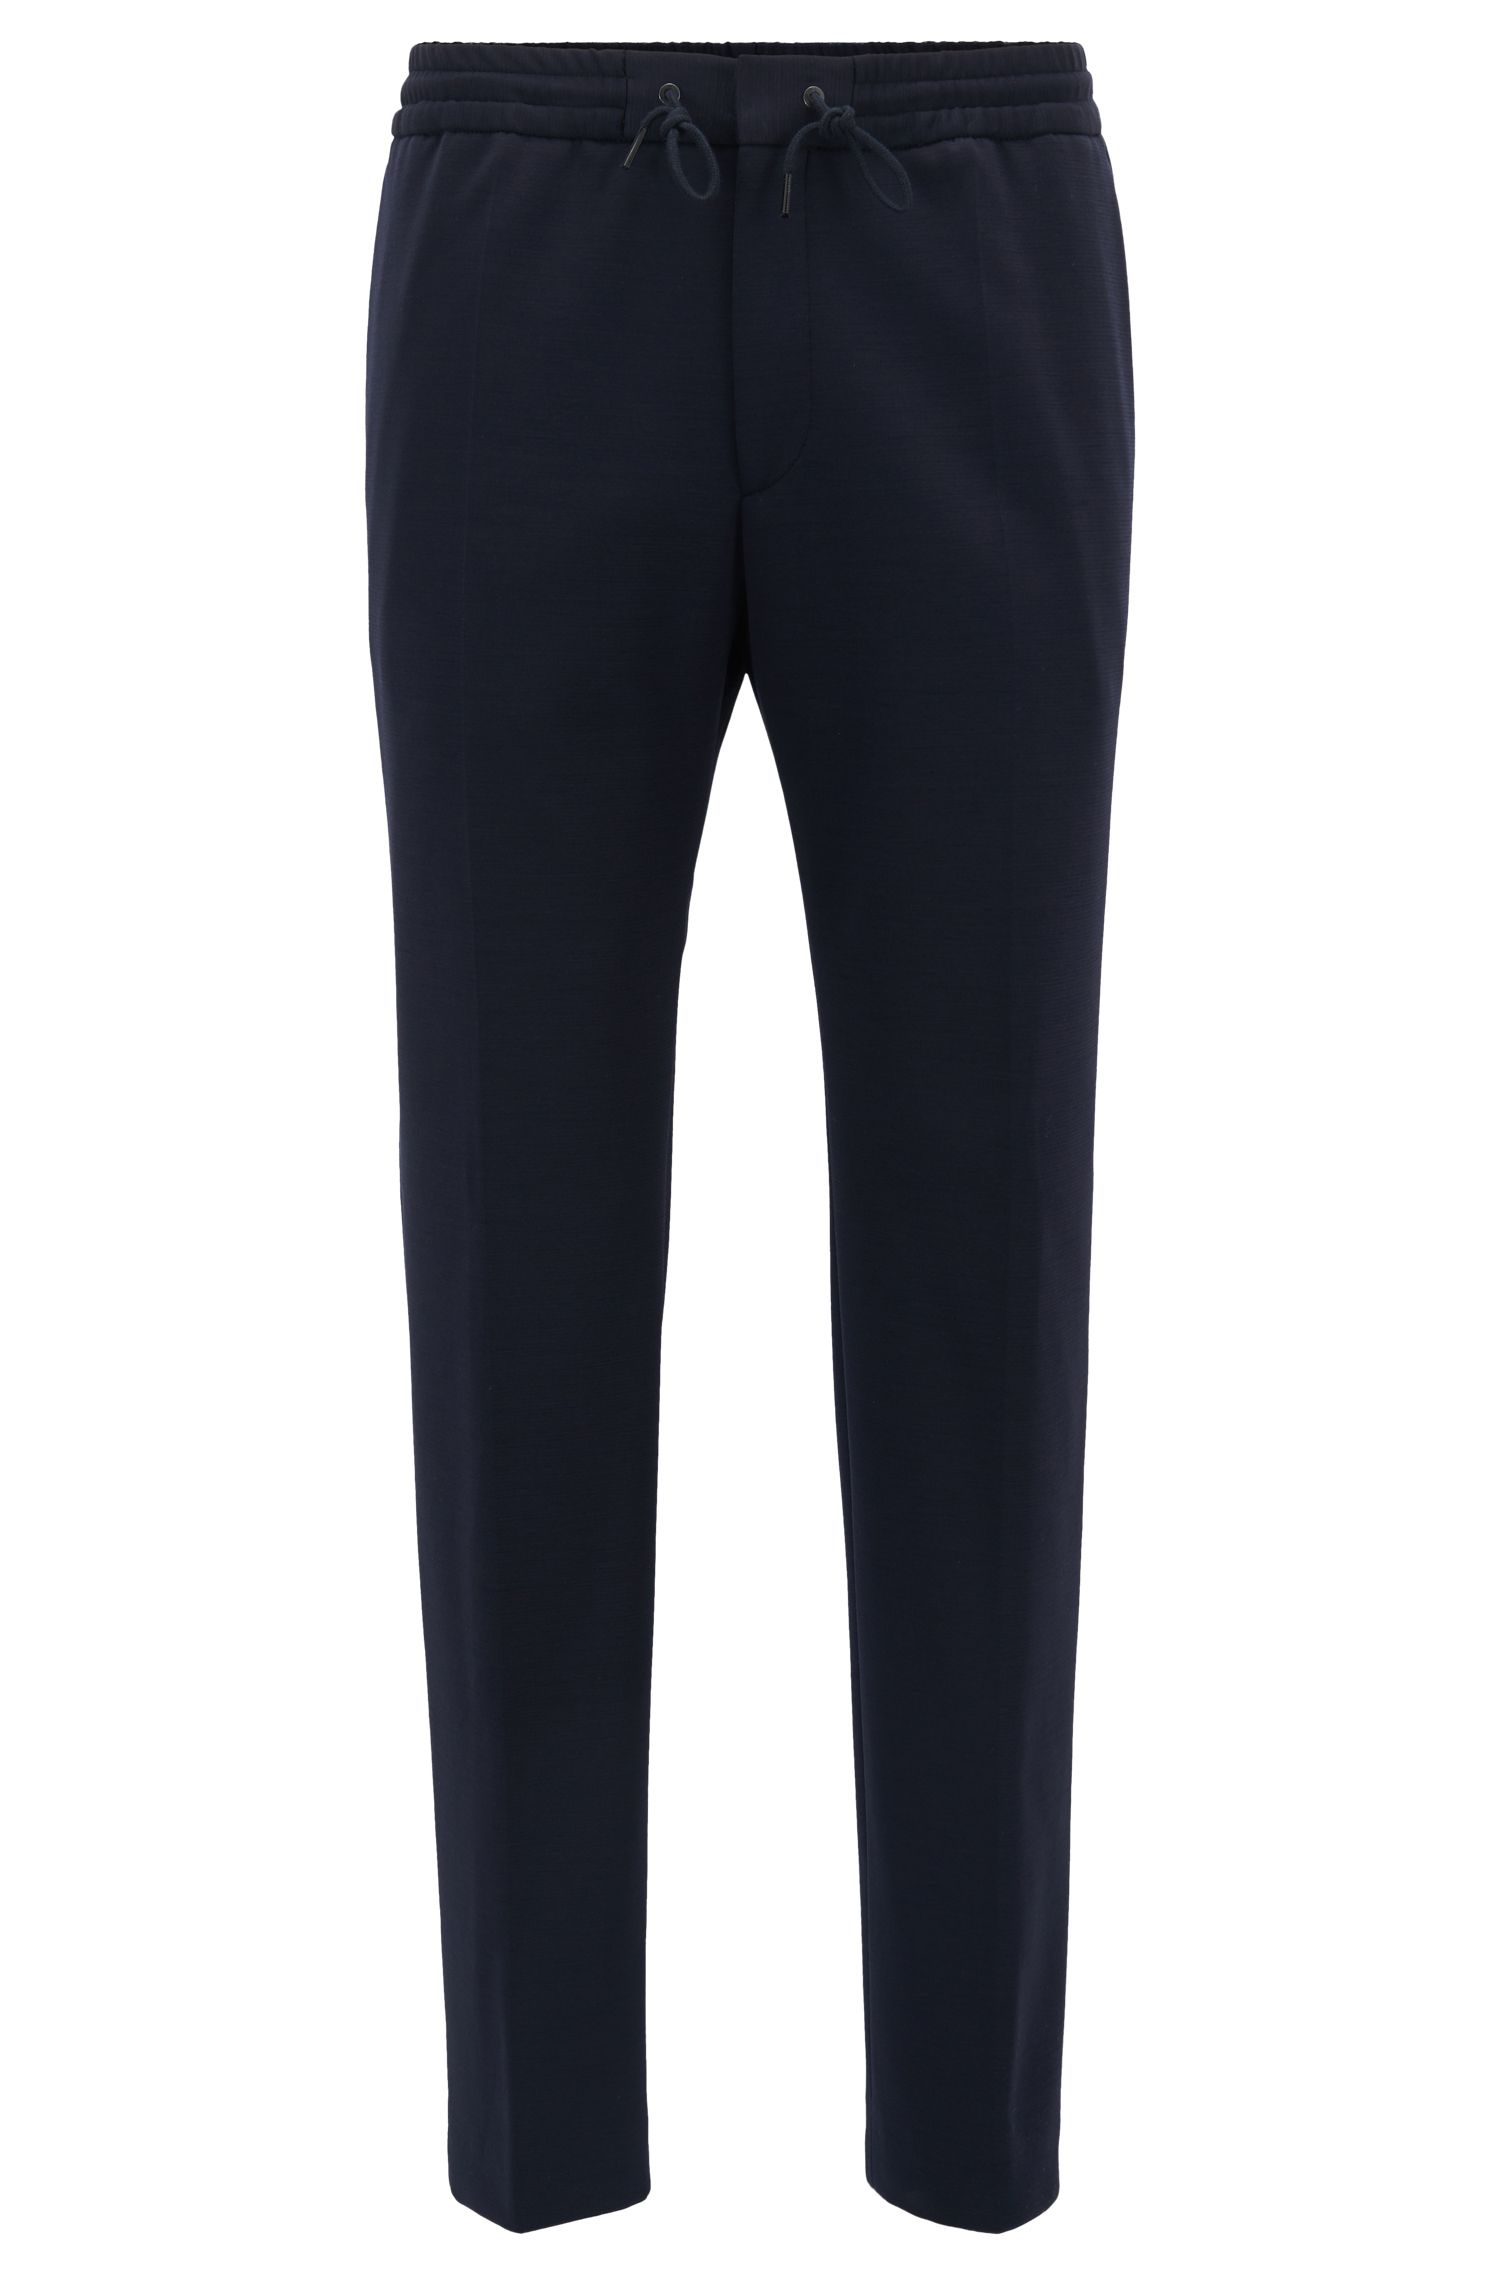 Stretch Dress Pant, Slim Fit | Banks J, Dark Blue